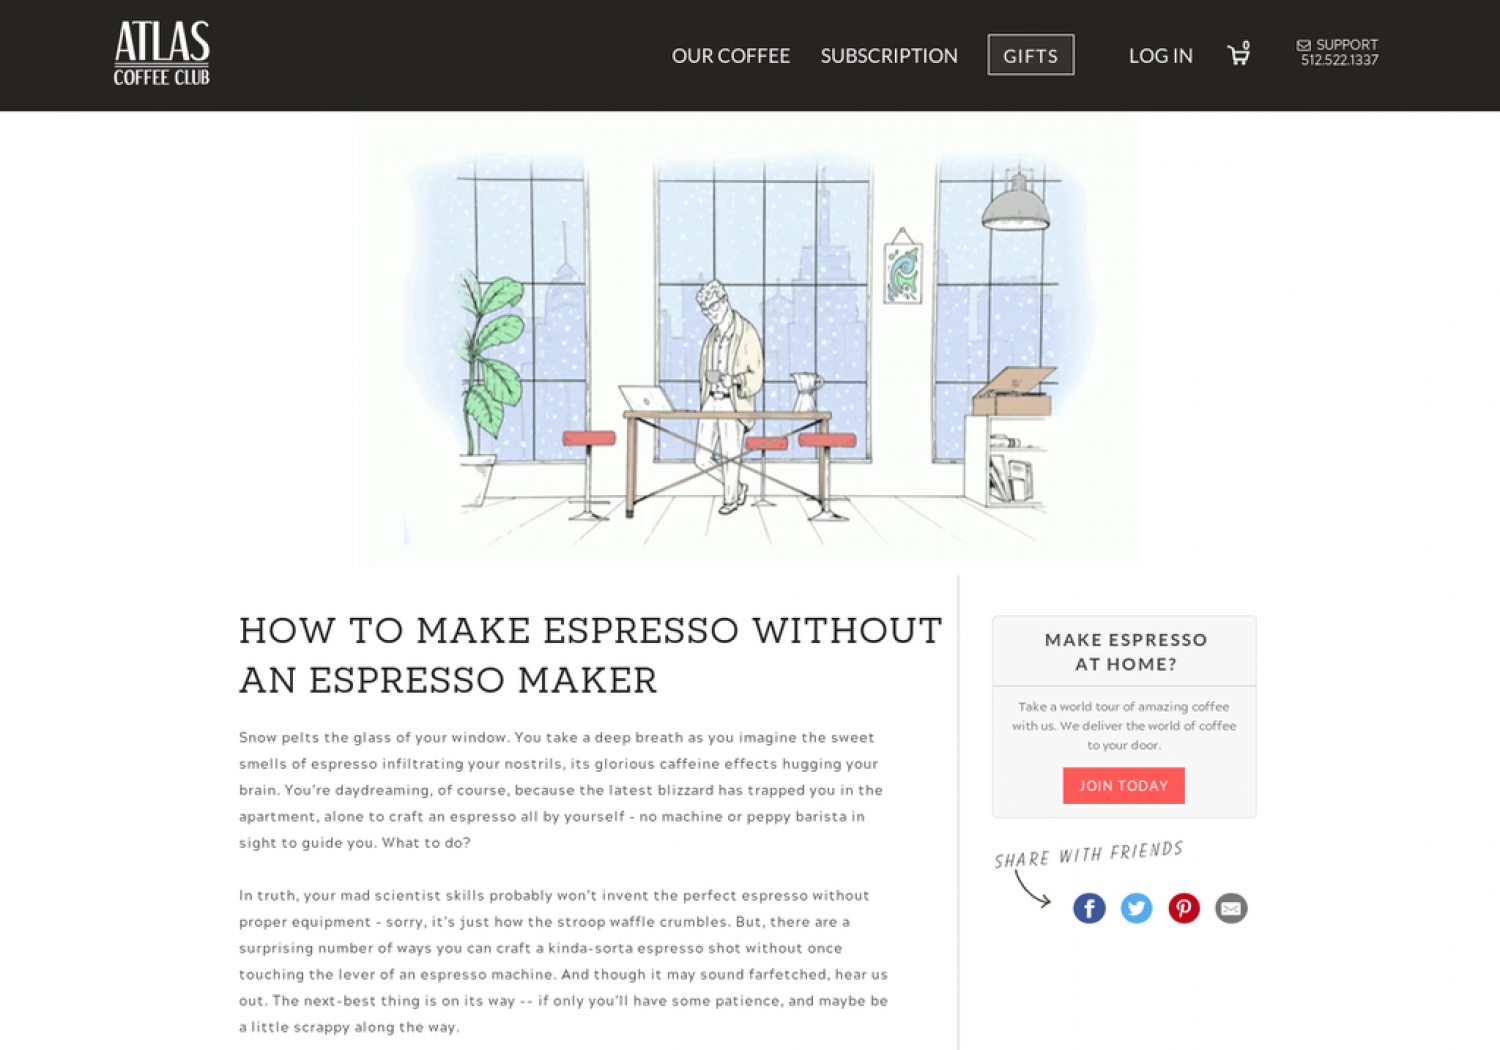 How to make espresso without an espresso maker Infographic